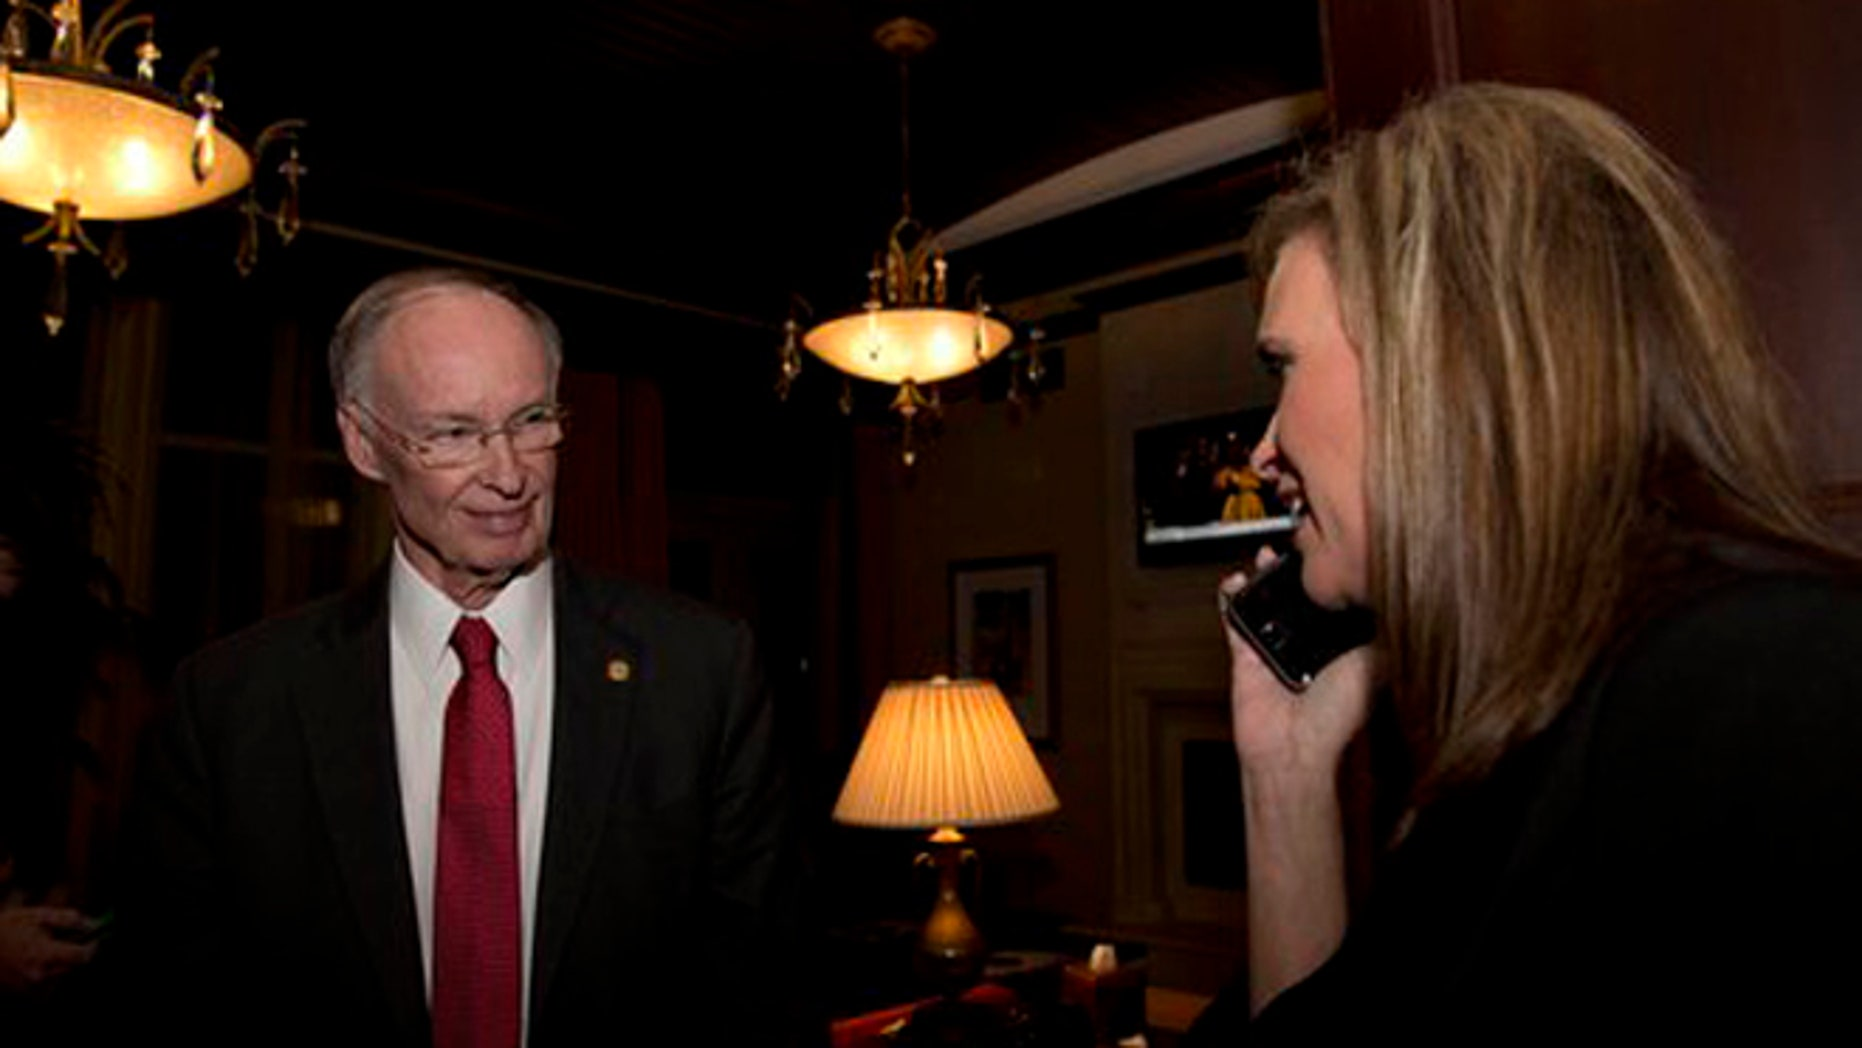 In this Tuesday, Nov. 4, 2014 file photo, Republican Gov. Robert Bentley listens to a phone call as Rebekah Mason, right, announces his win for Alabama governor, in Montgomery, Ala.